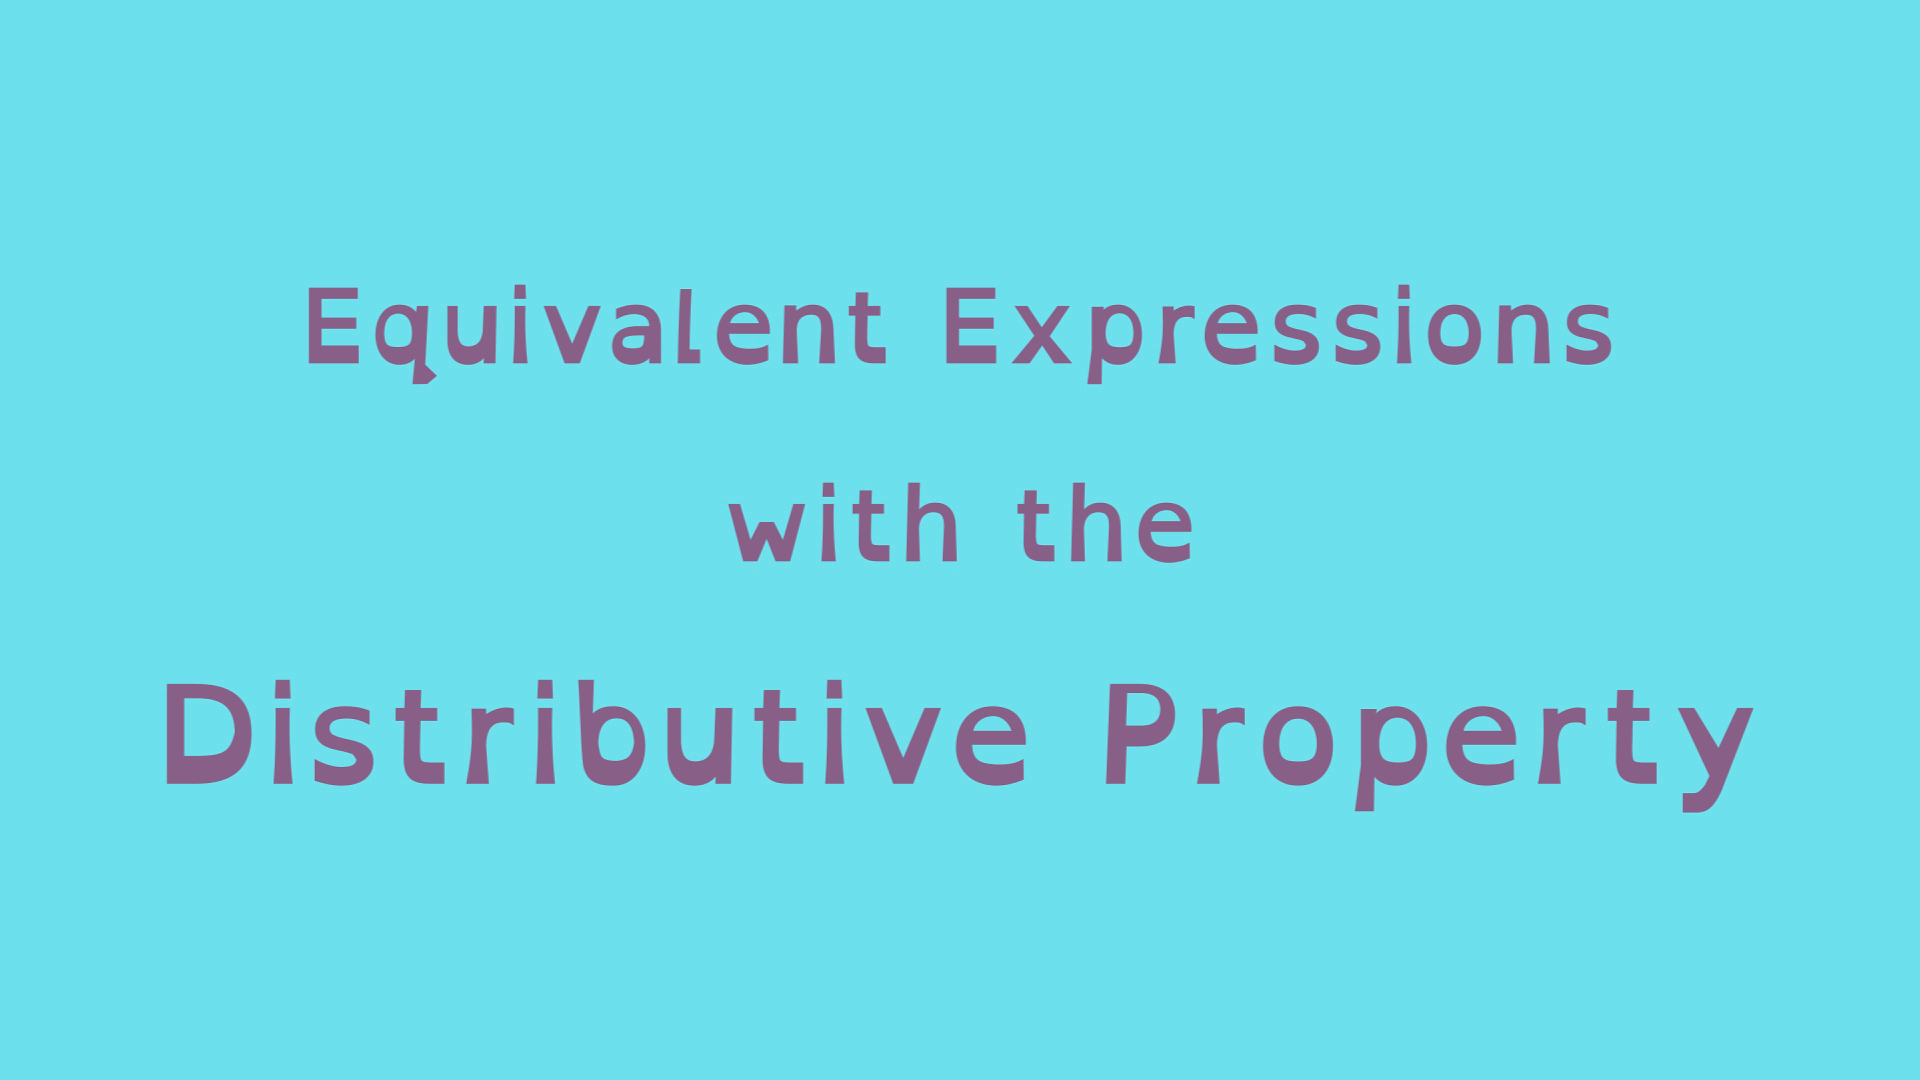 Equivalent Expressions with the Distributive Property - Planet Nutshell